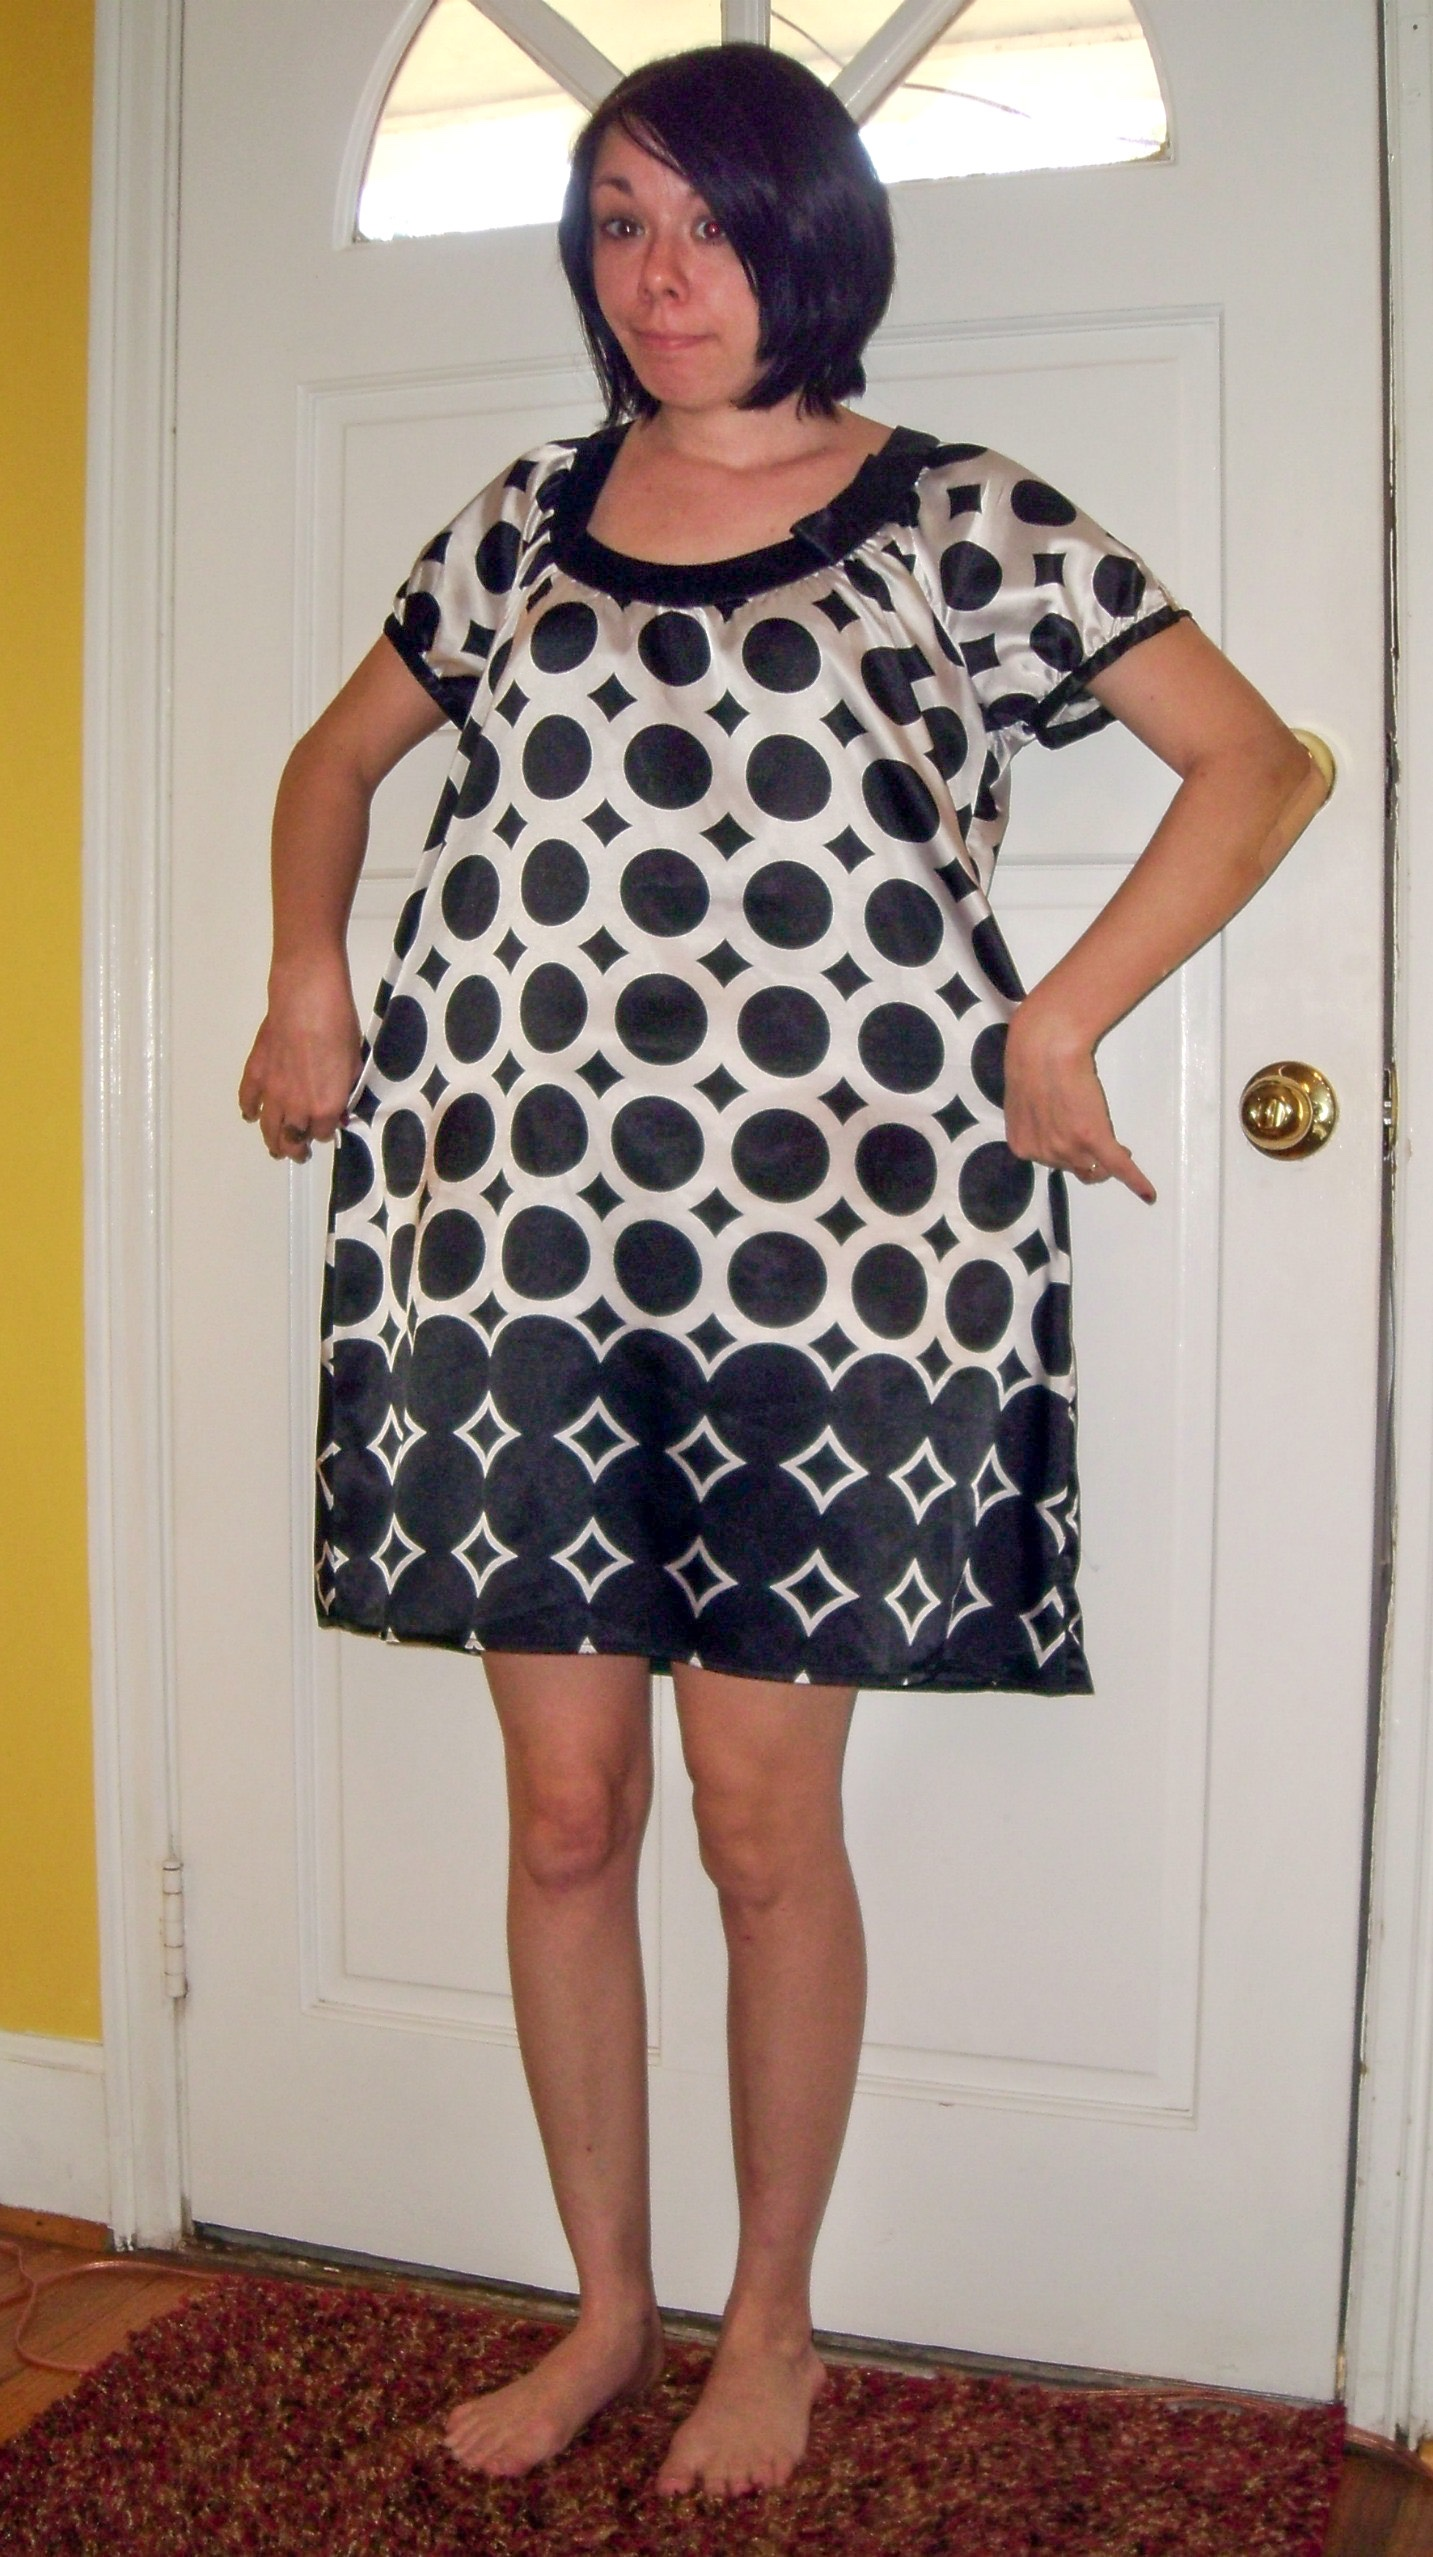 How to Take in a Dress for New Year's Eve before